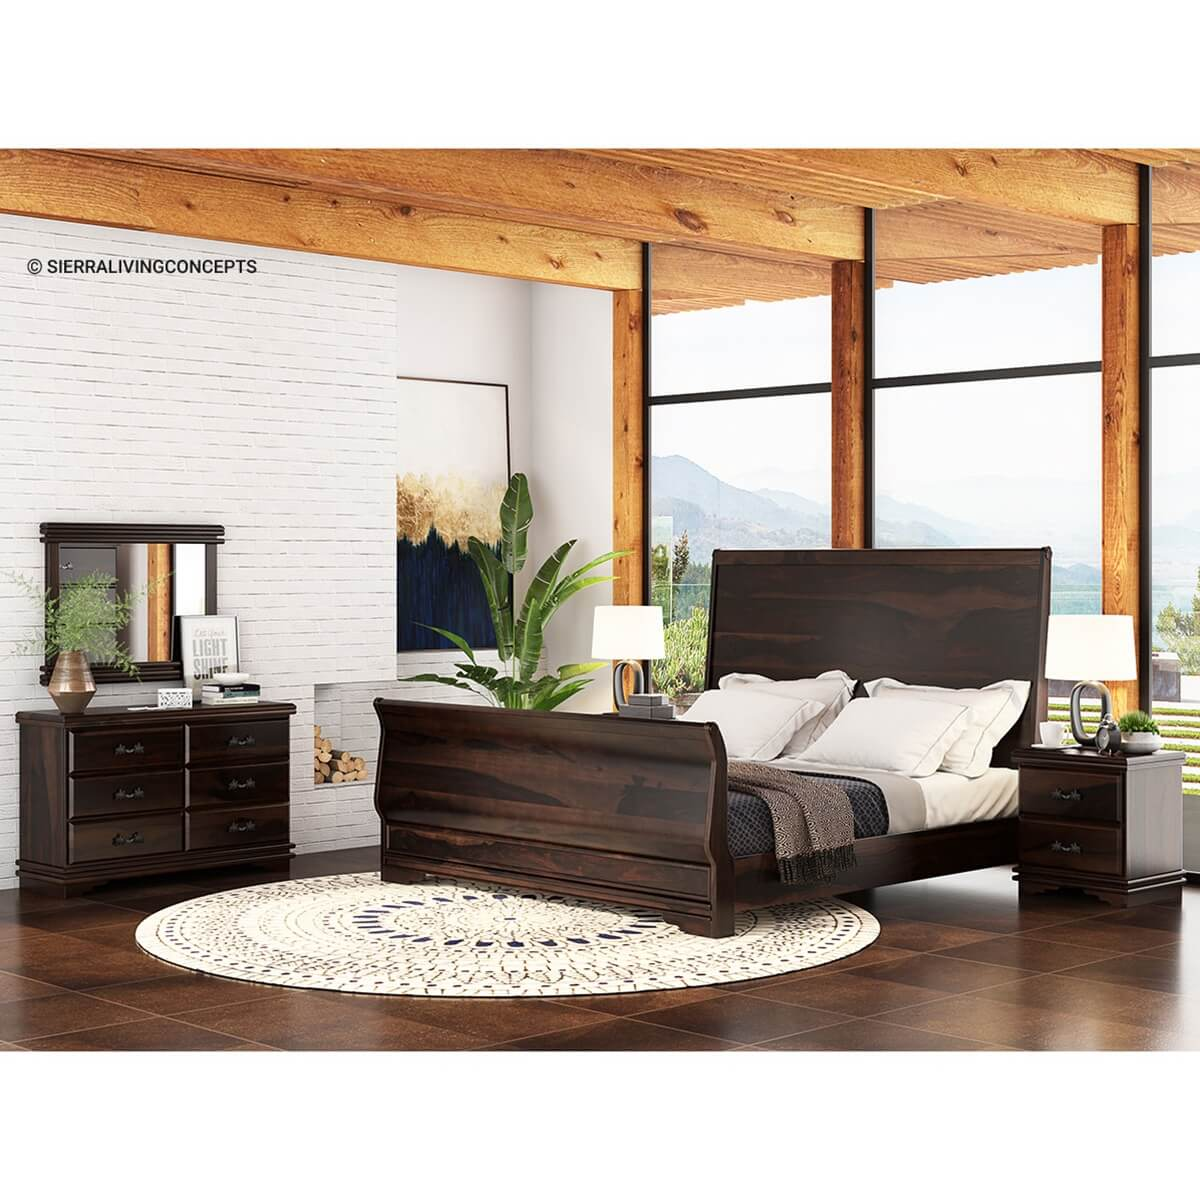 Sleigh Back Solid Wood Platform Bed 7pc Bedroom Furniture Set